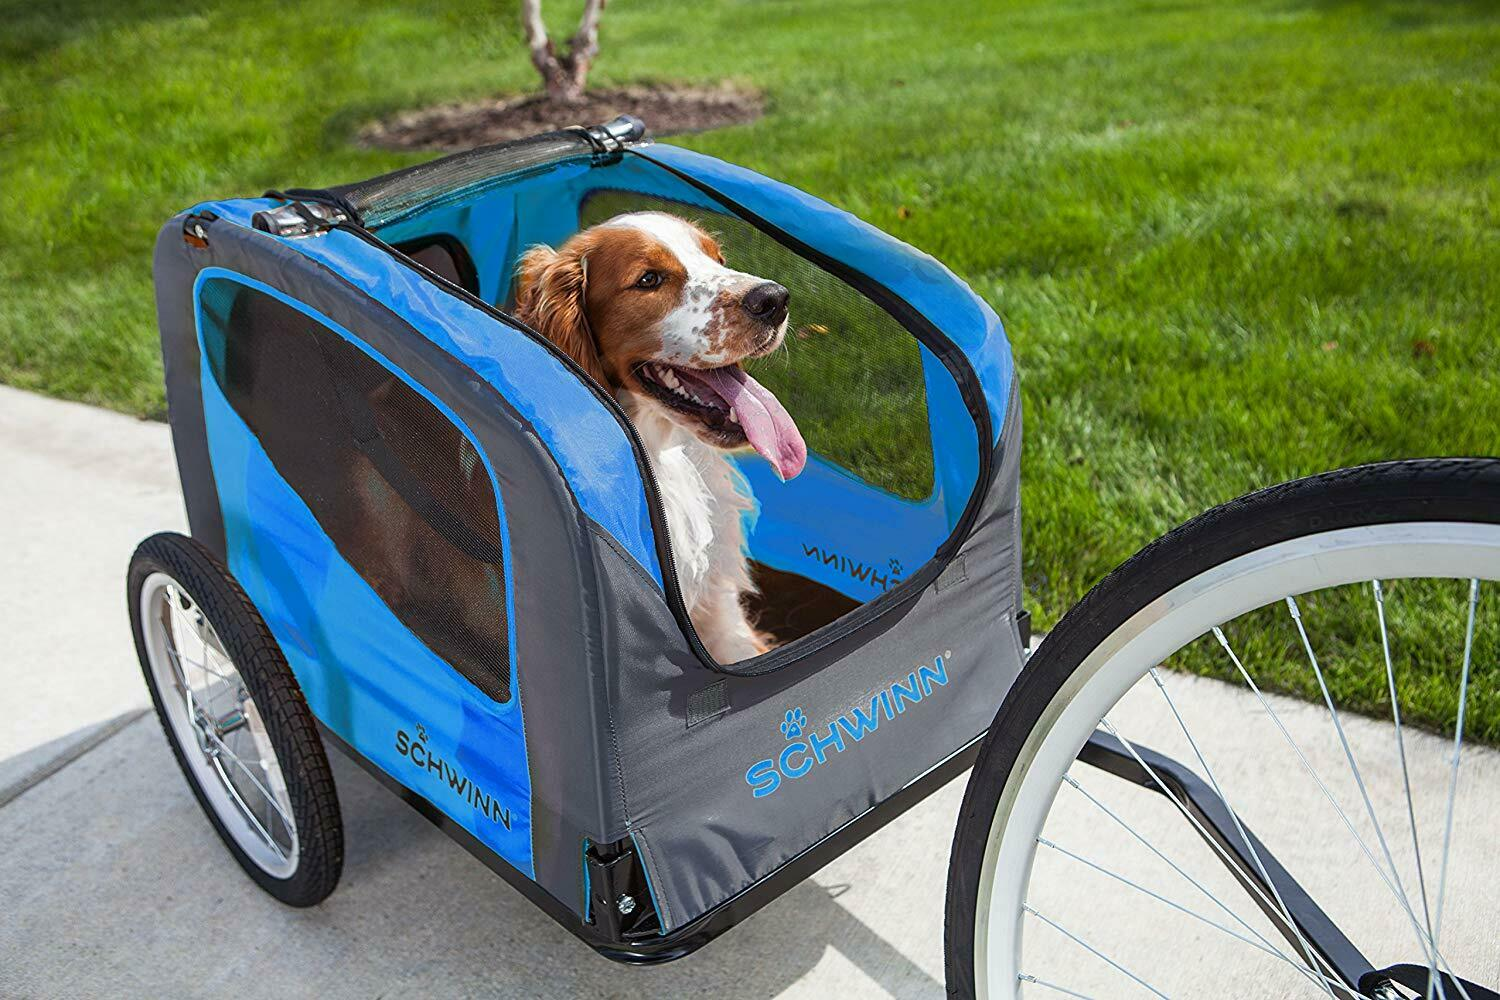 Bike Trailer for Dogs Foldable Safety Pet Outdoor Ride Bicycle Travel Carrier